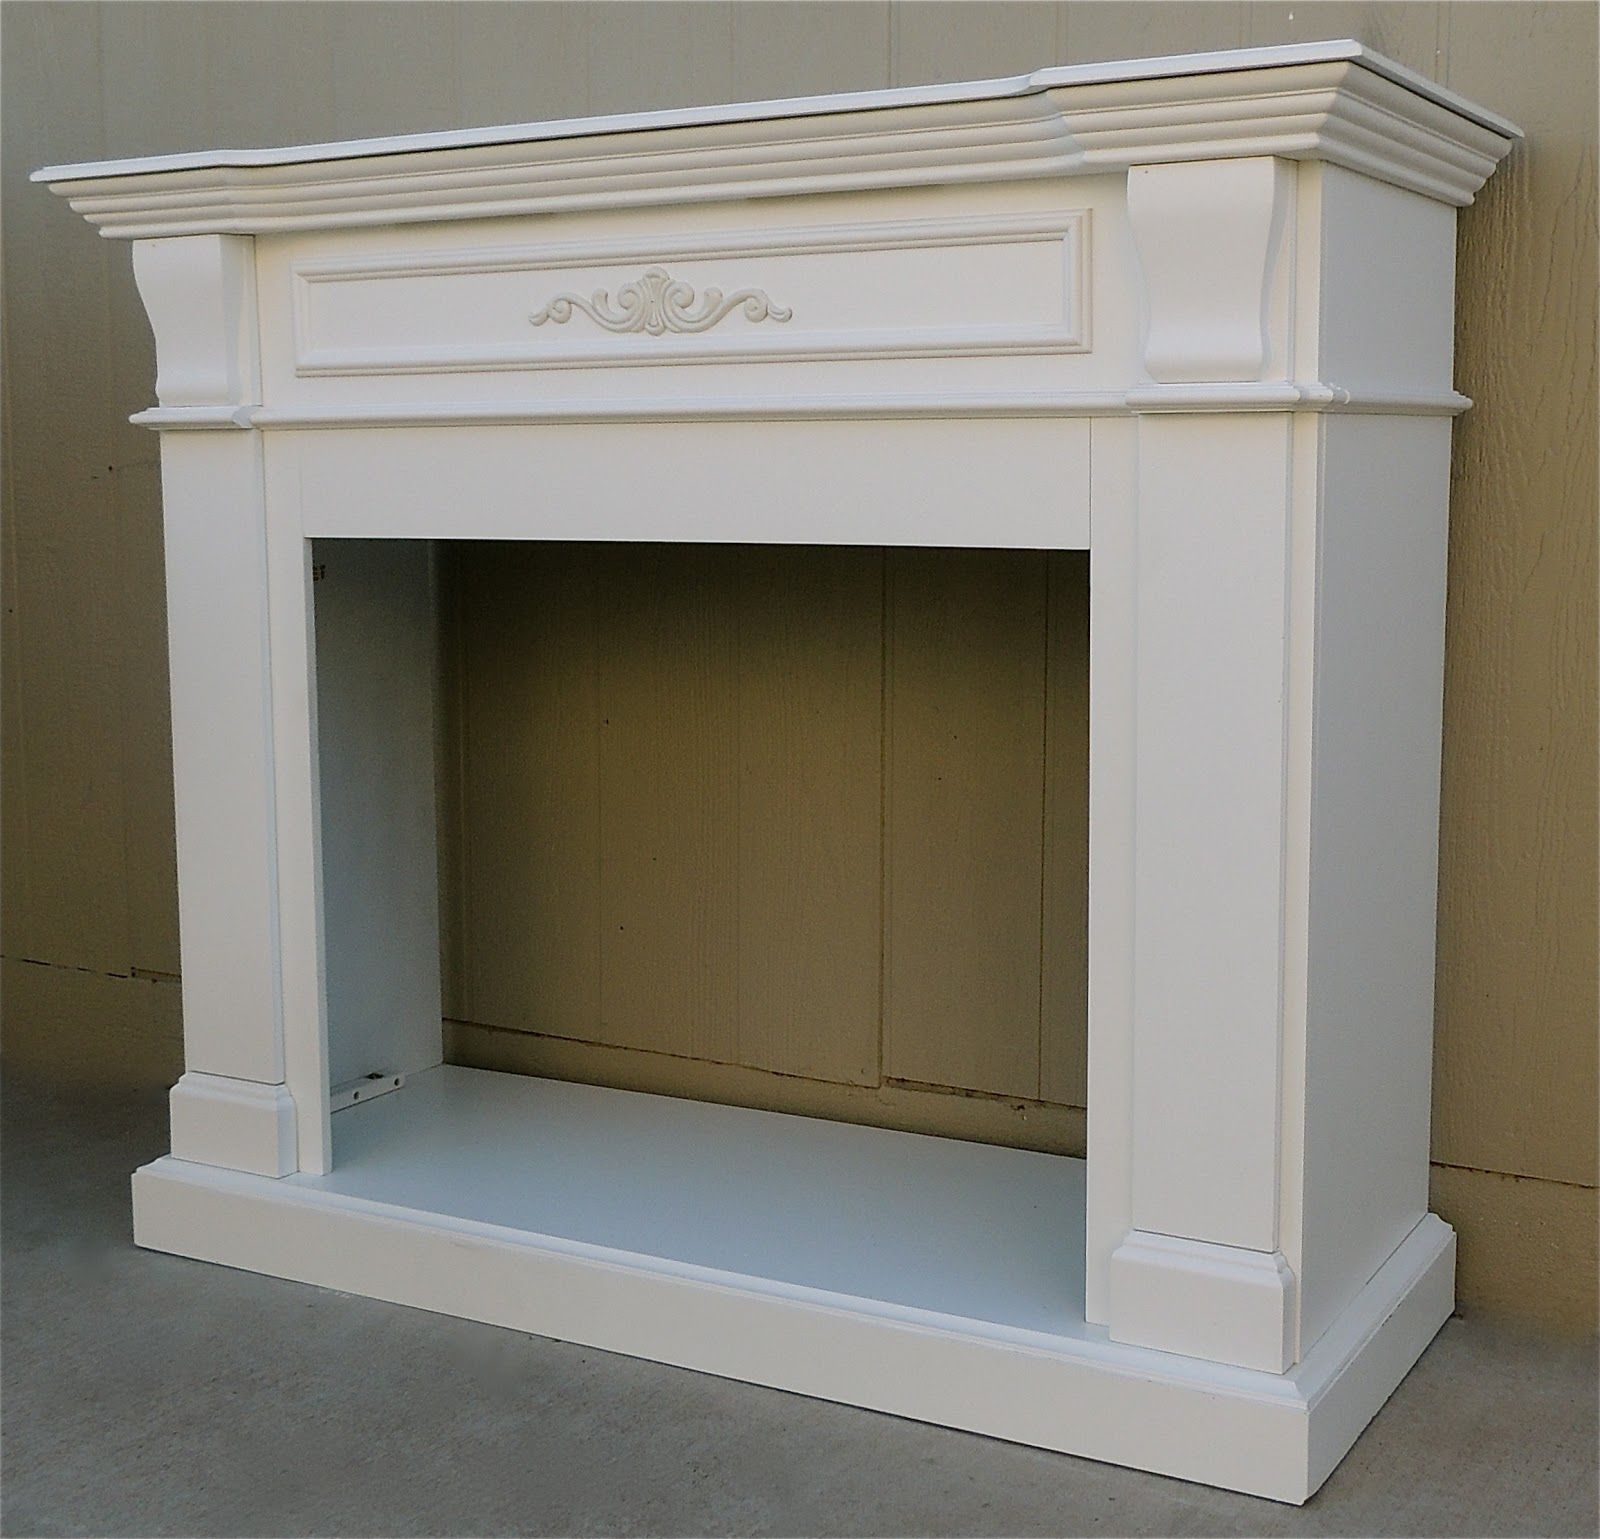 For Sale Is A Beautiful Fireplace Mantle That Has Been Painted A Crisp White It Measures 56 Wide X 2 Shabby Chic Fireplace Faux Fireplace Faux Fireplace Diy